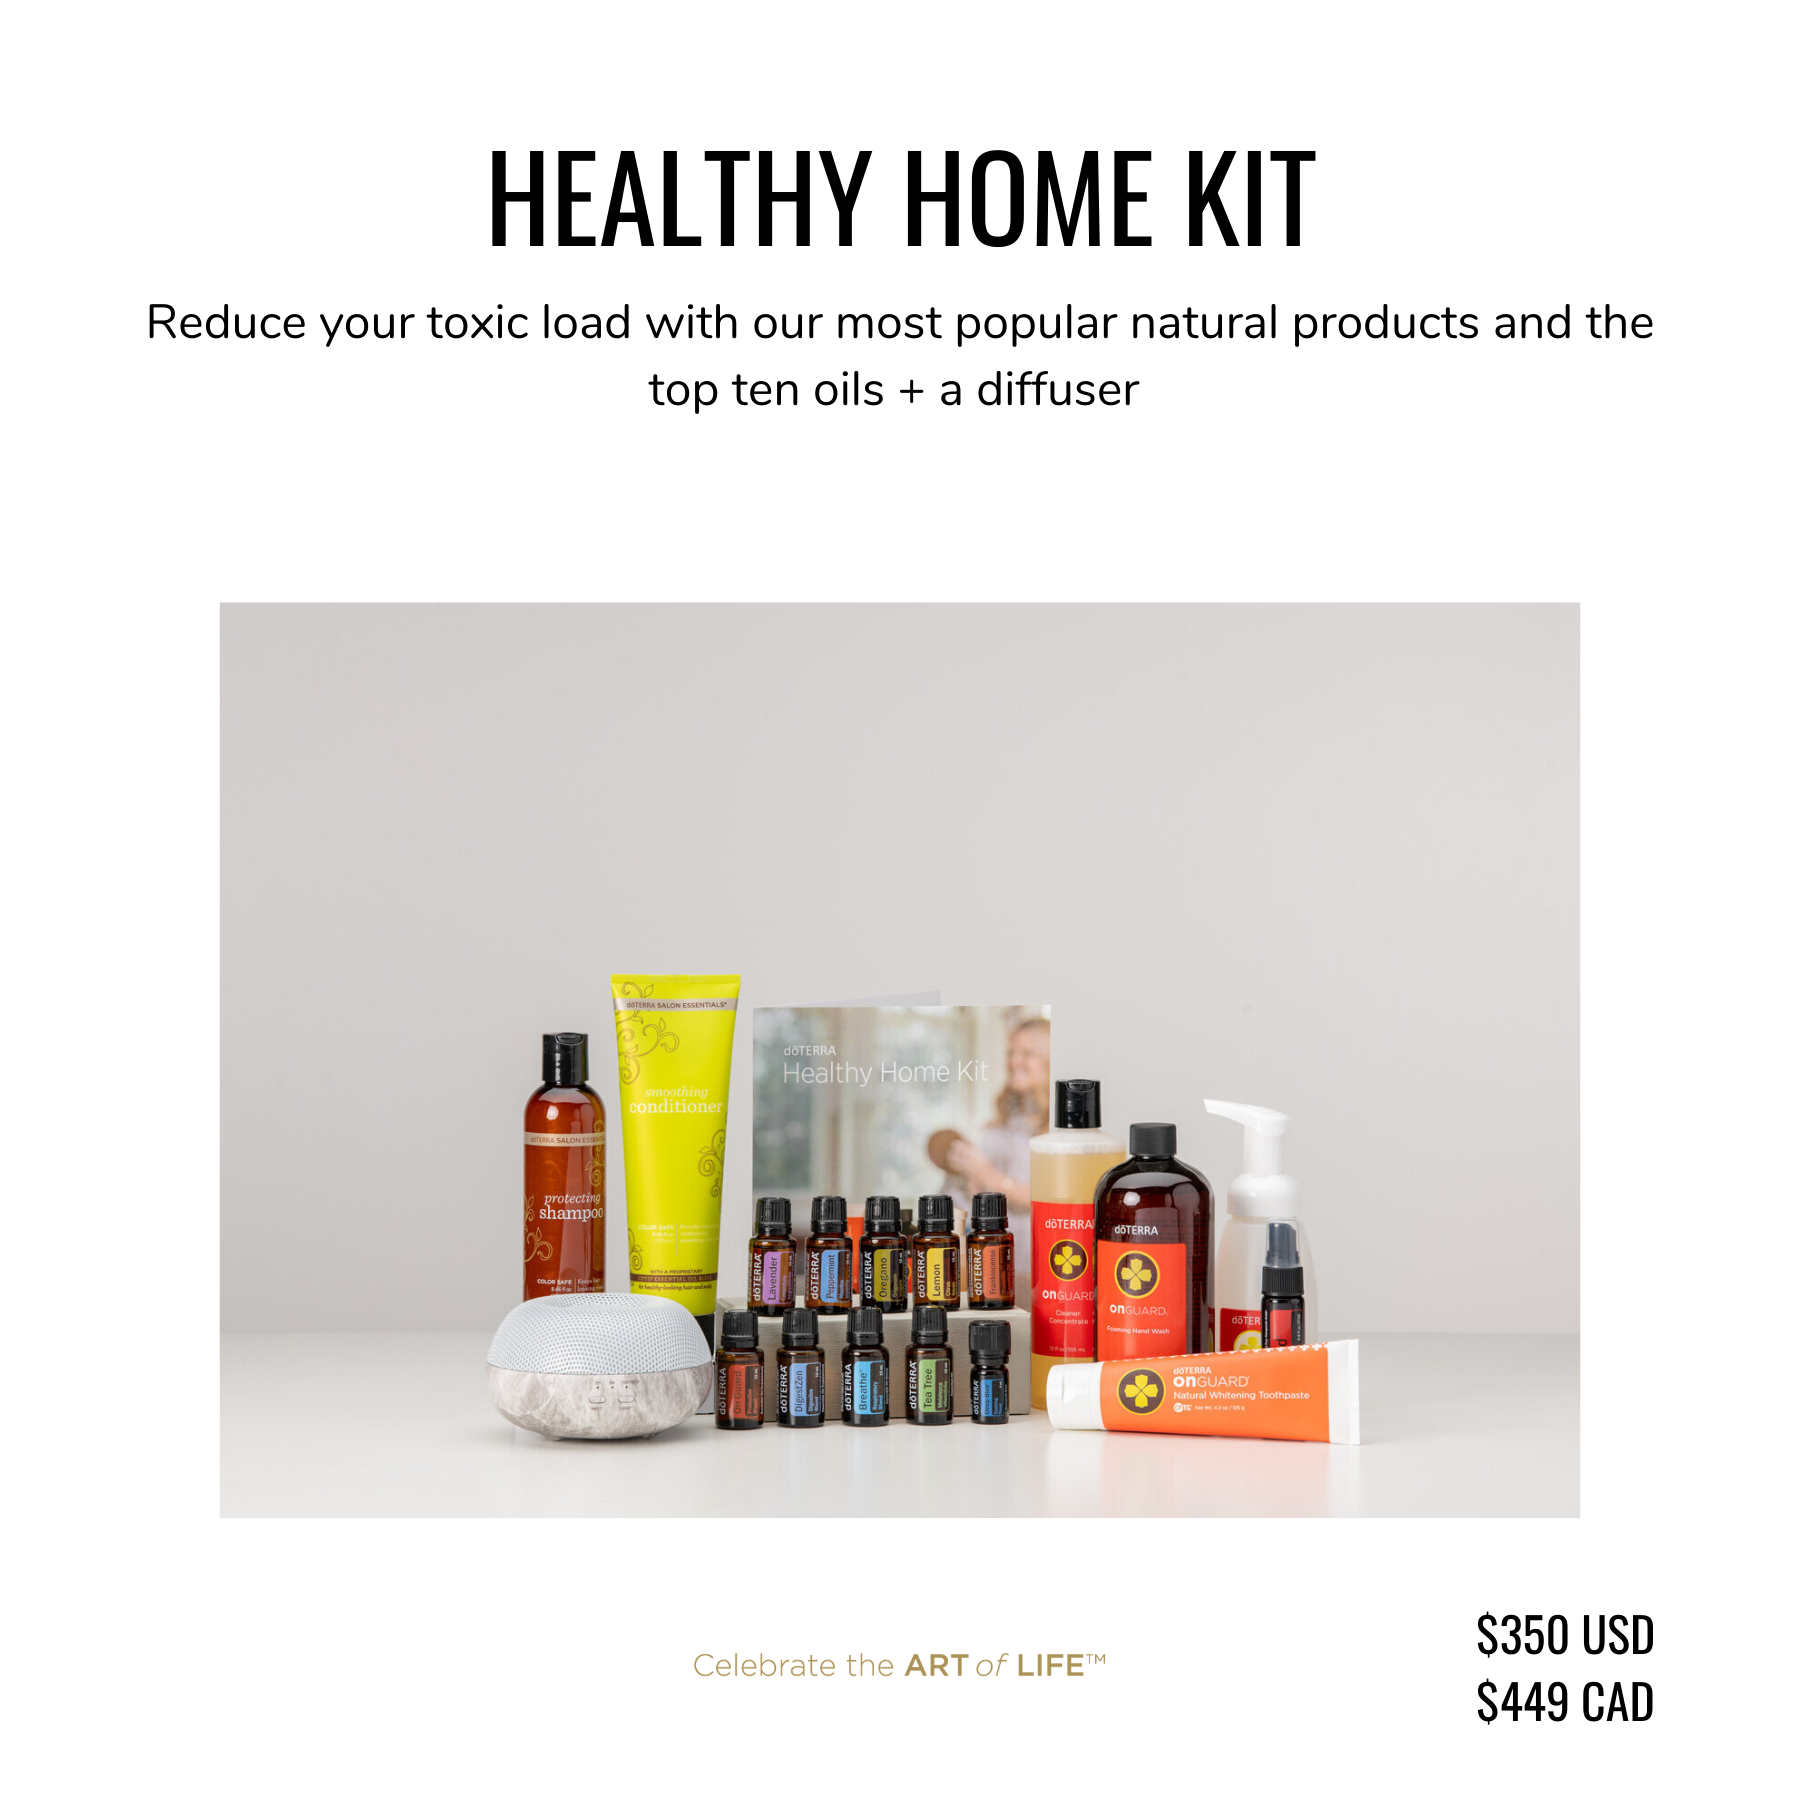 dōTERRA Healthy Home Kit